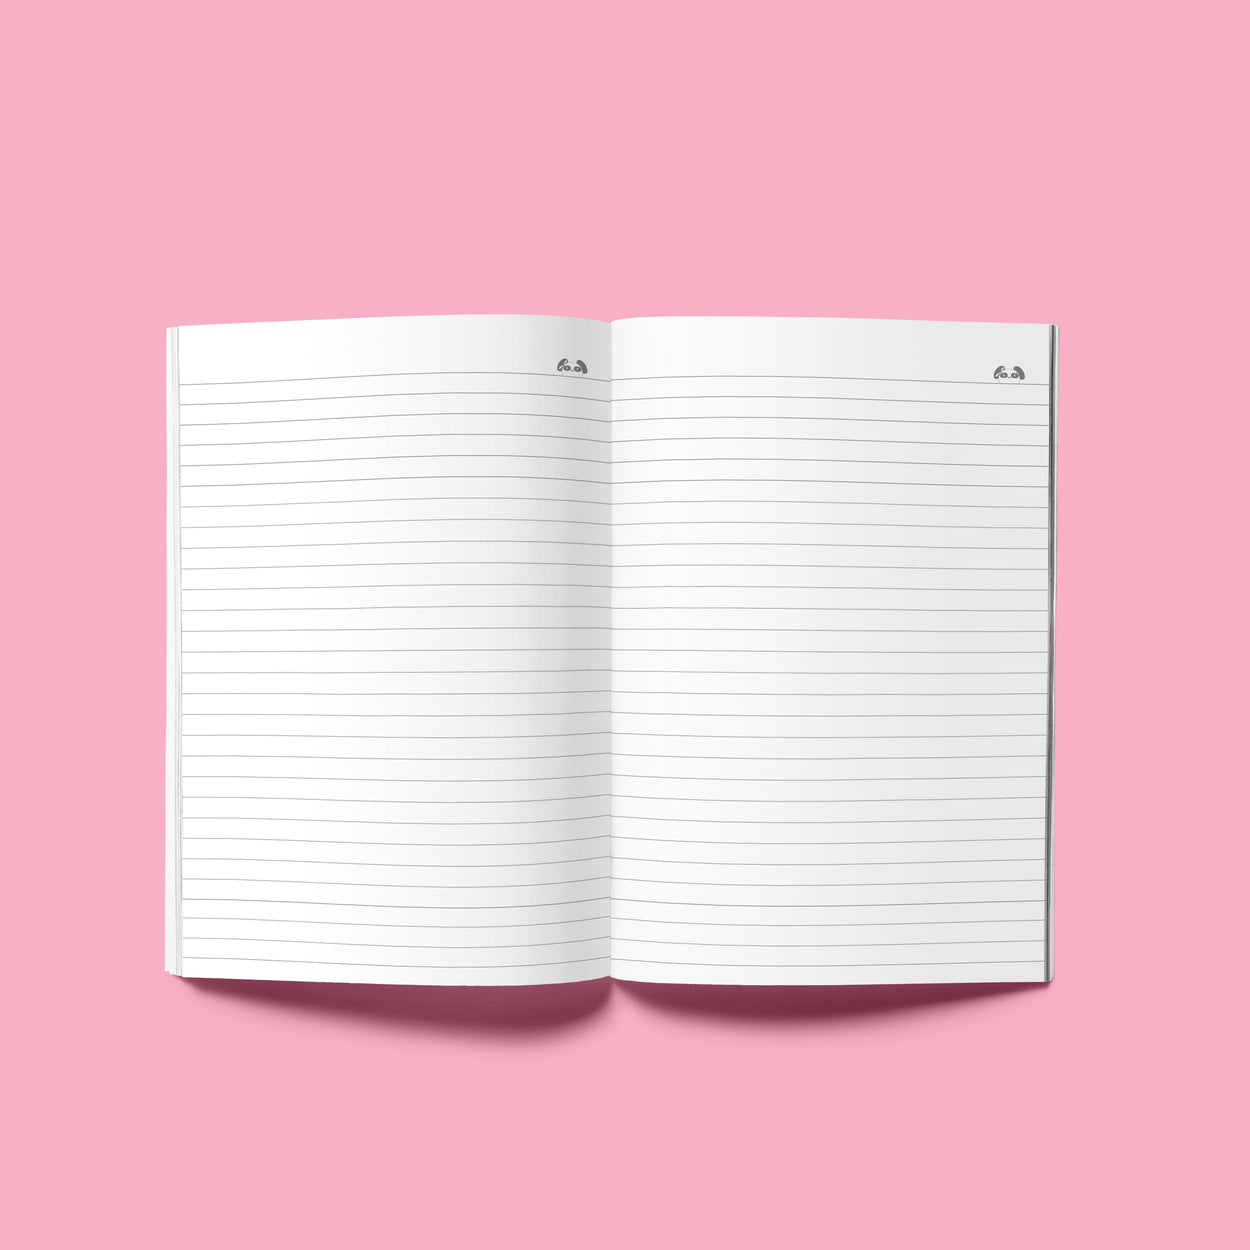 "Sola Panda Composition Notebook - 8.25"" x 5.5"""